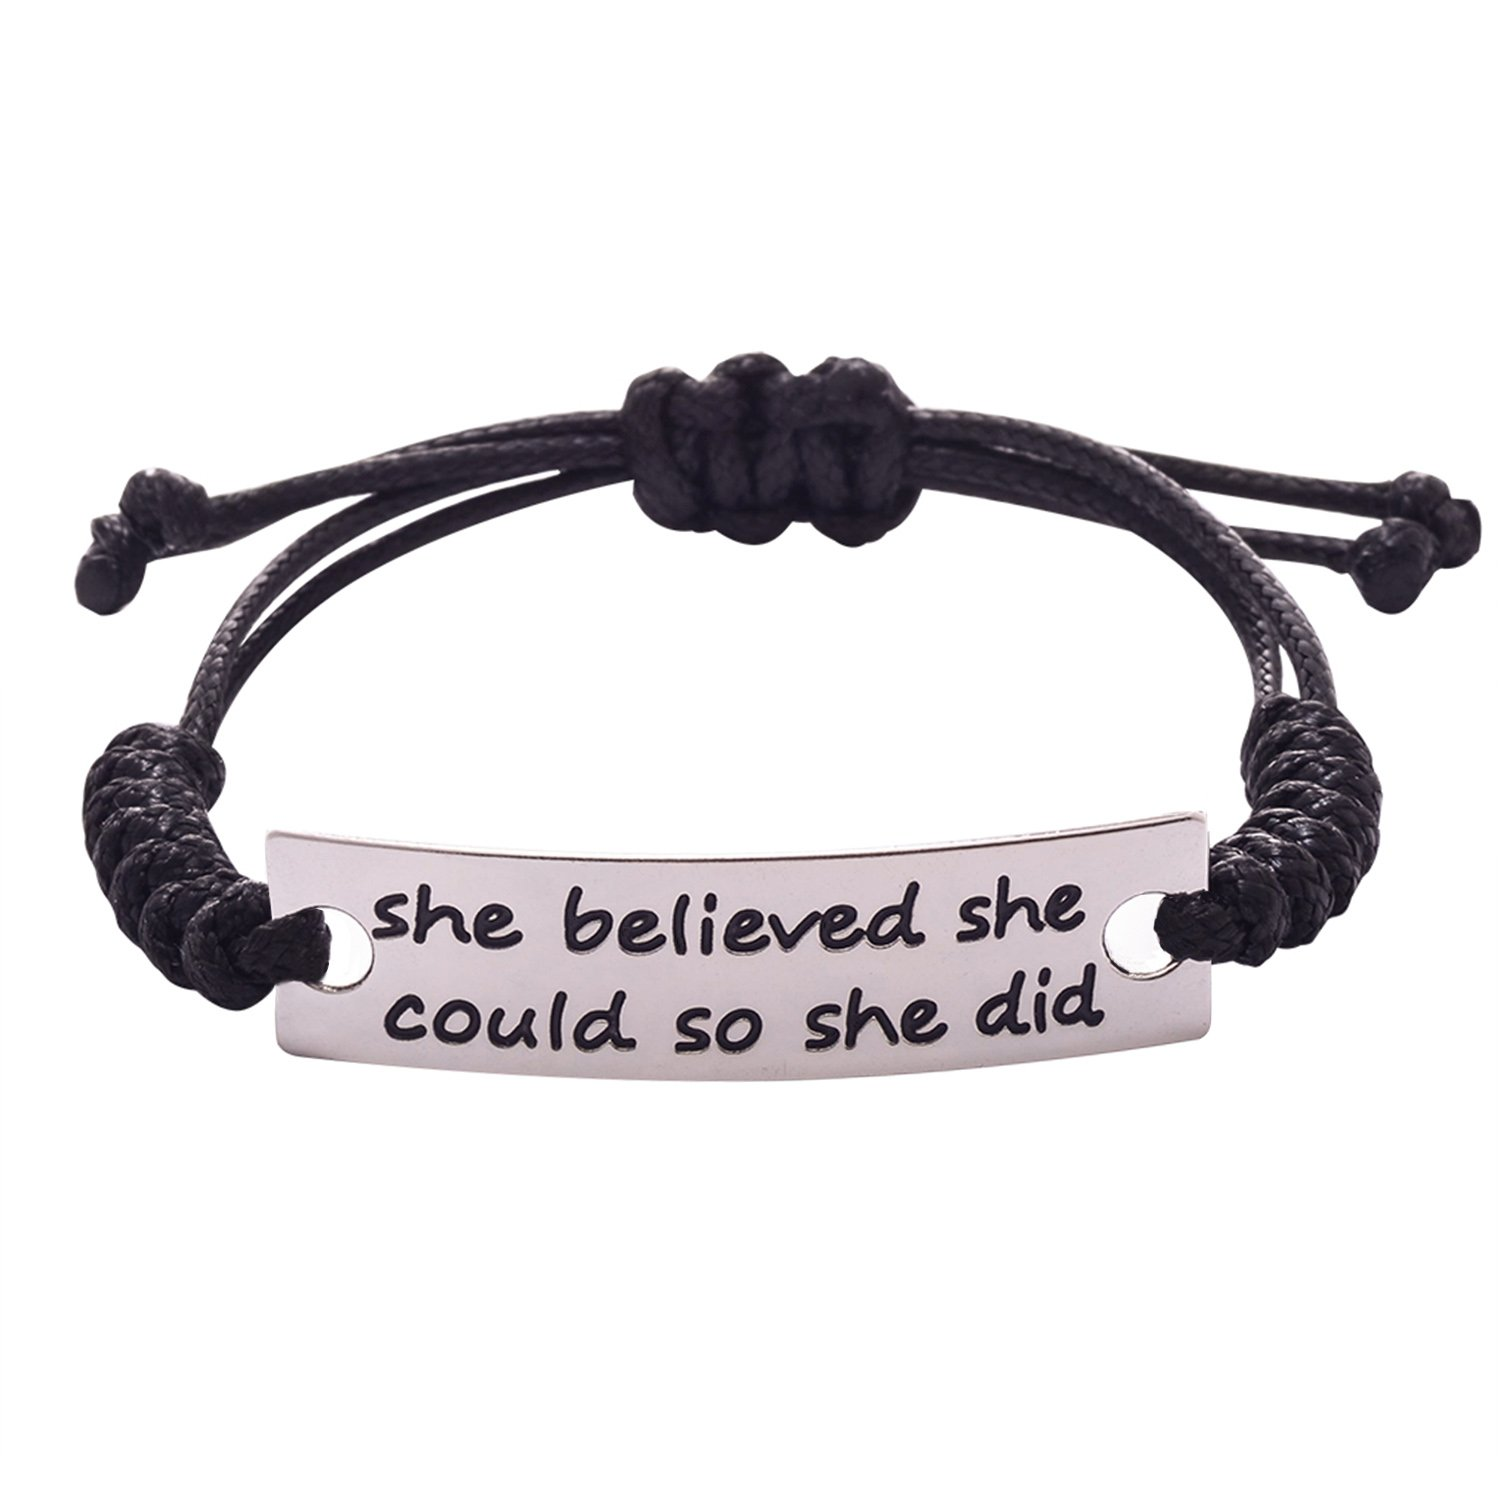 BaubleStar She believed she could so she did Inspirational Bracelet Gift Jewelry DreamyGal BAN0047-US